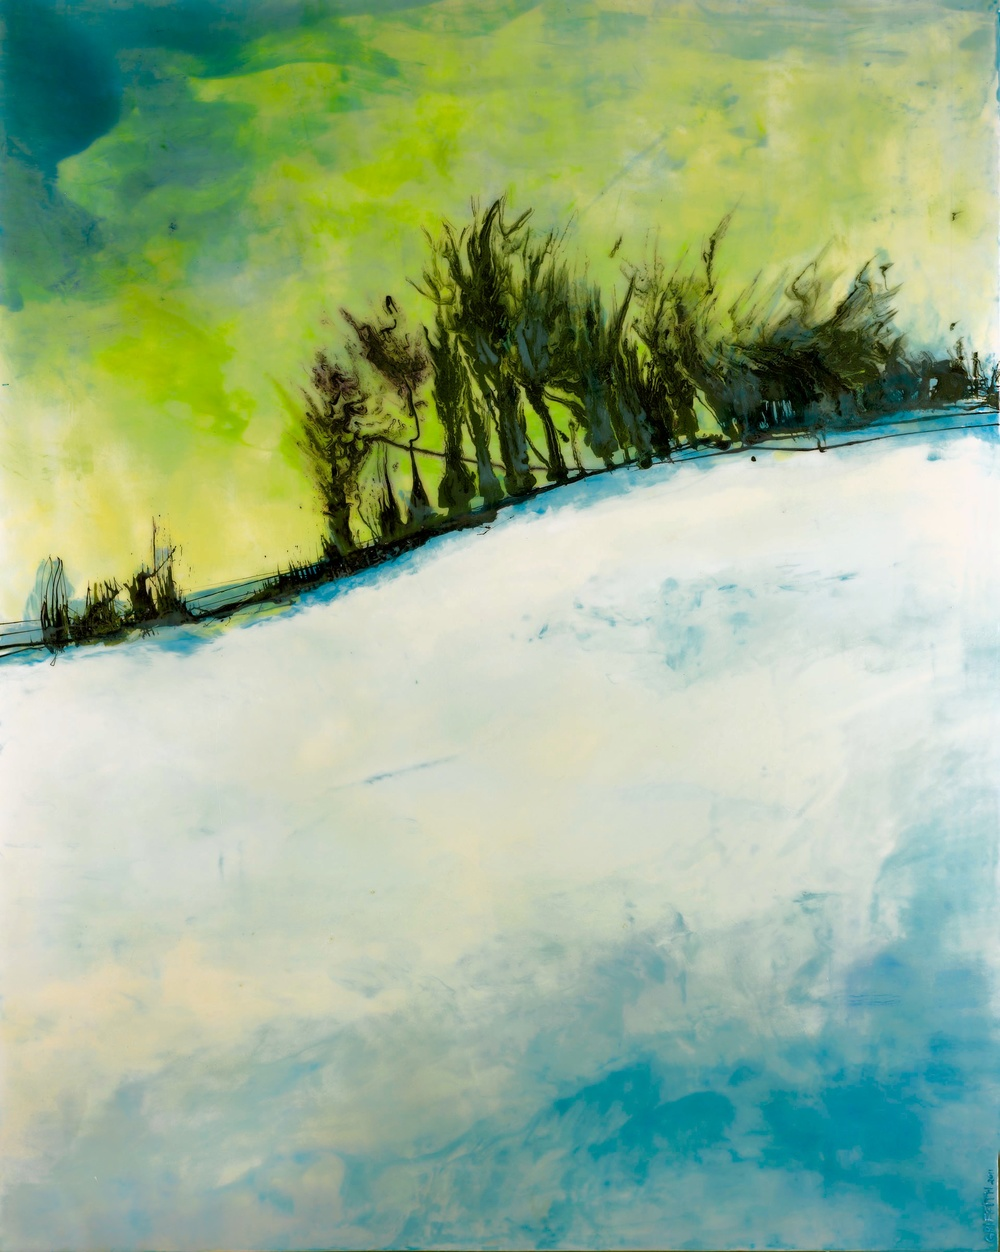 """Winter Ridge""                                                                                    48"" x 60"" acrylic & resin on canvas   - SOLD"